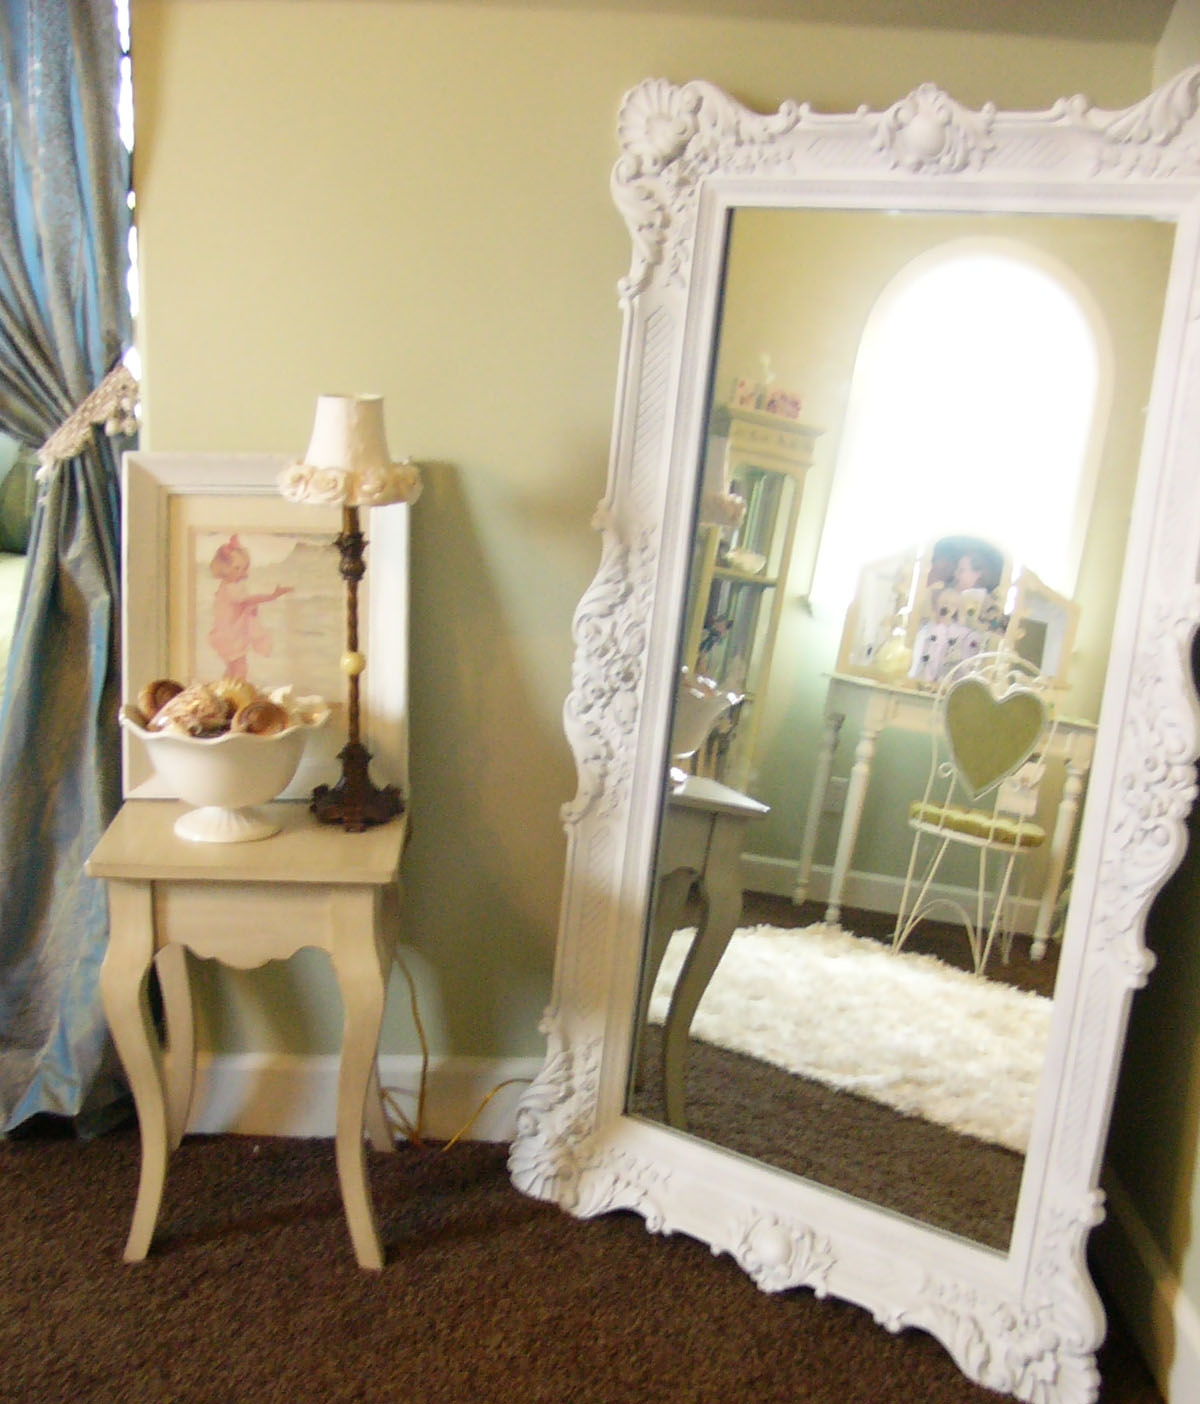 Flooring Contemporary Whiter Mirrorswhite Framed Mirror With In Long Free Standing Mirror (Image 6 of 15)